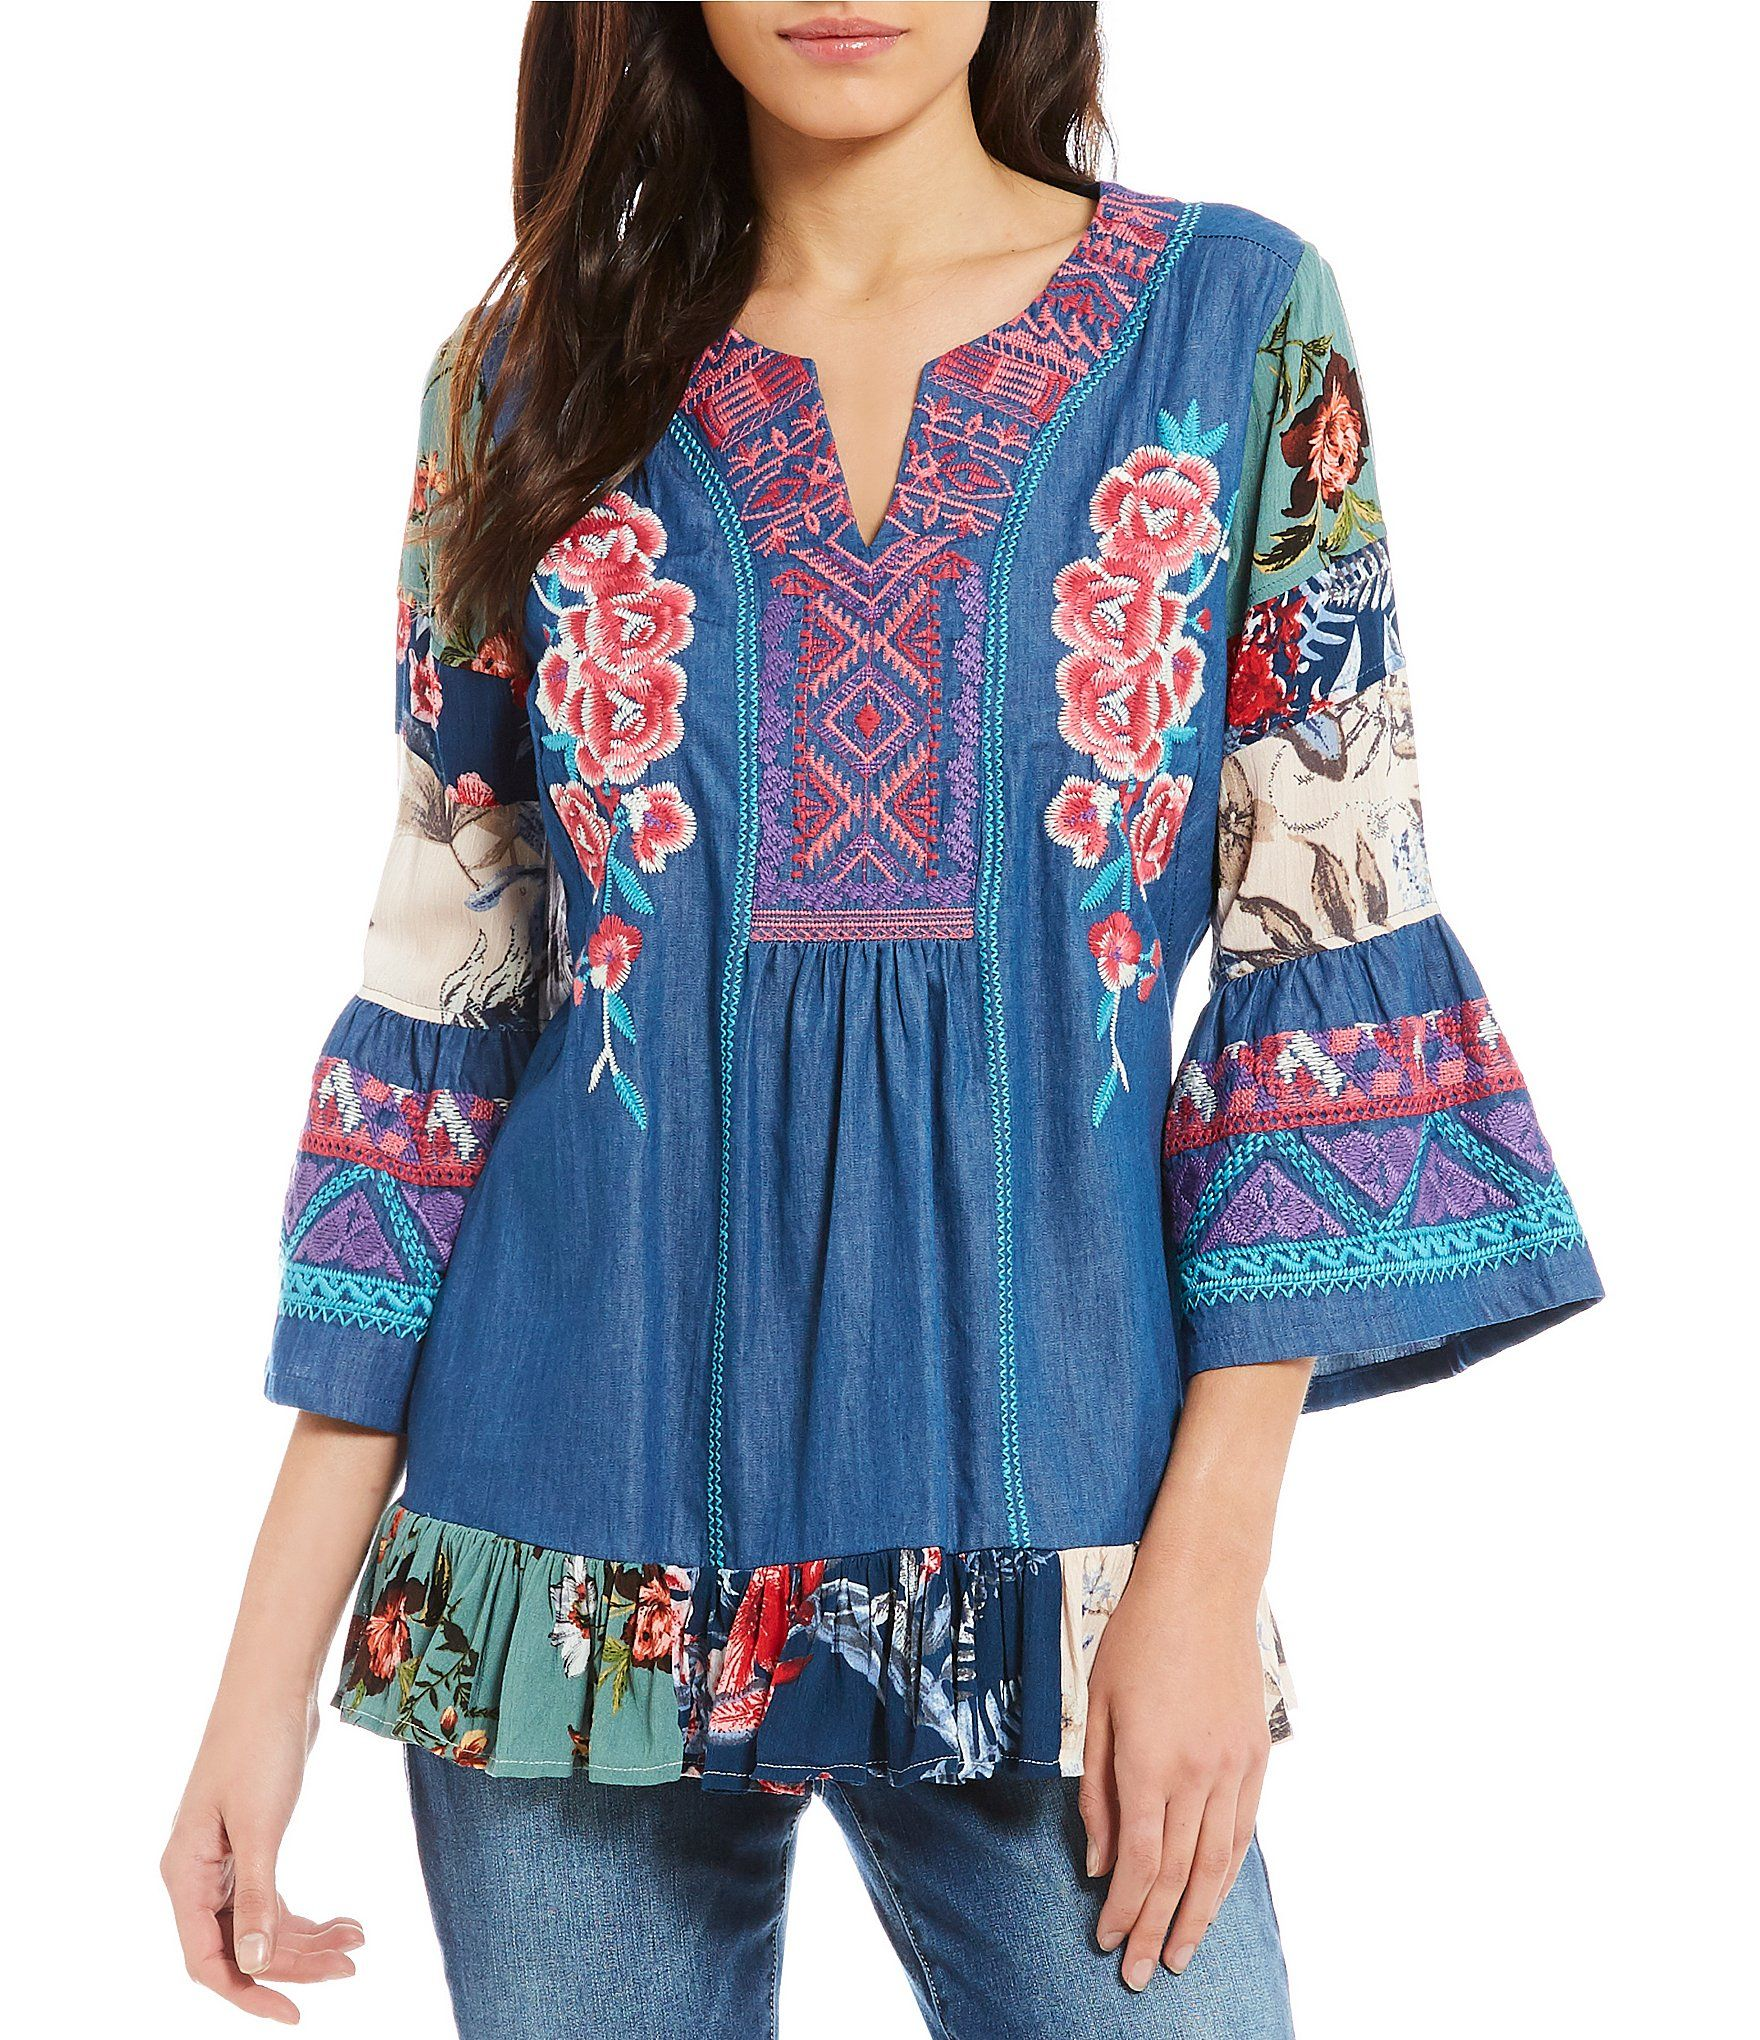 63e8c7e4426184 Shop for Calessa Rose Embroidered Bell Sleeve Split V-Neck Tunic at  Dillards.com. Visit Dillards.com to find clothing, accessories, shoes,  cosmetics & more.